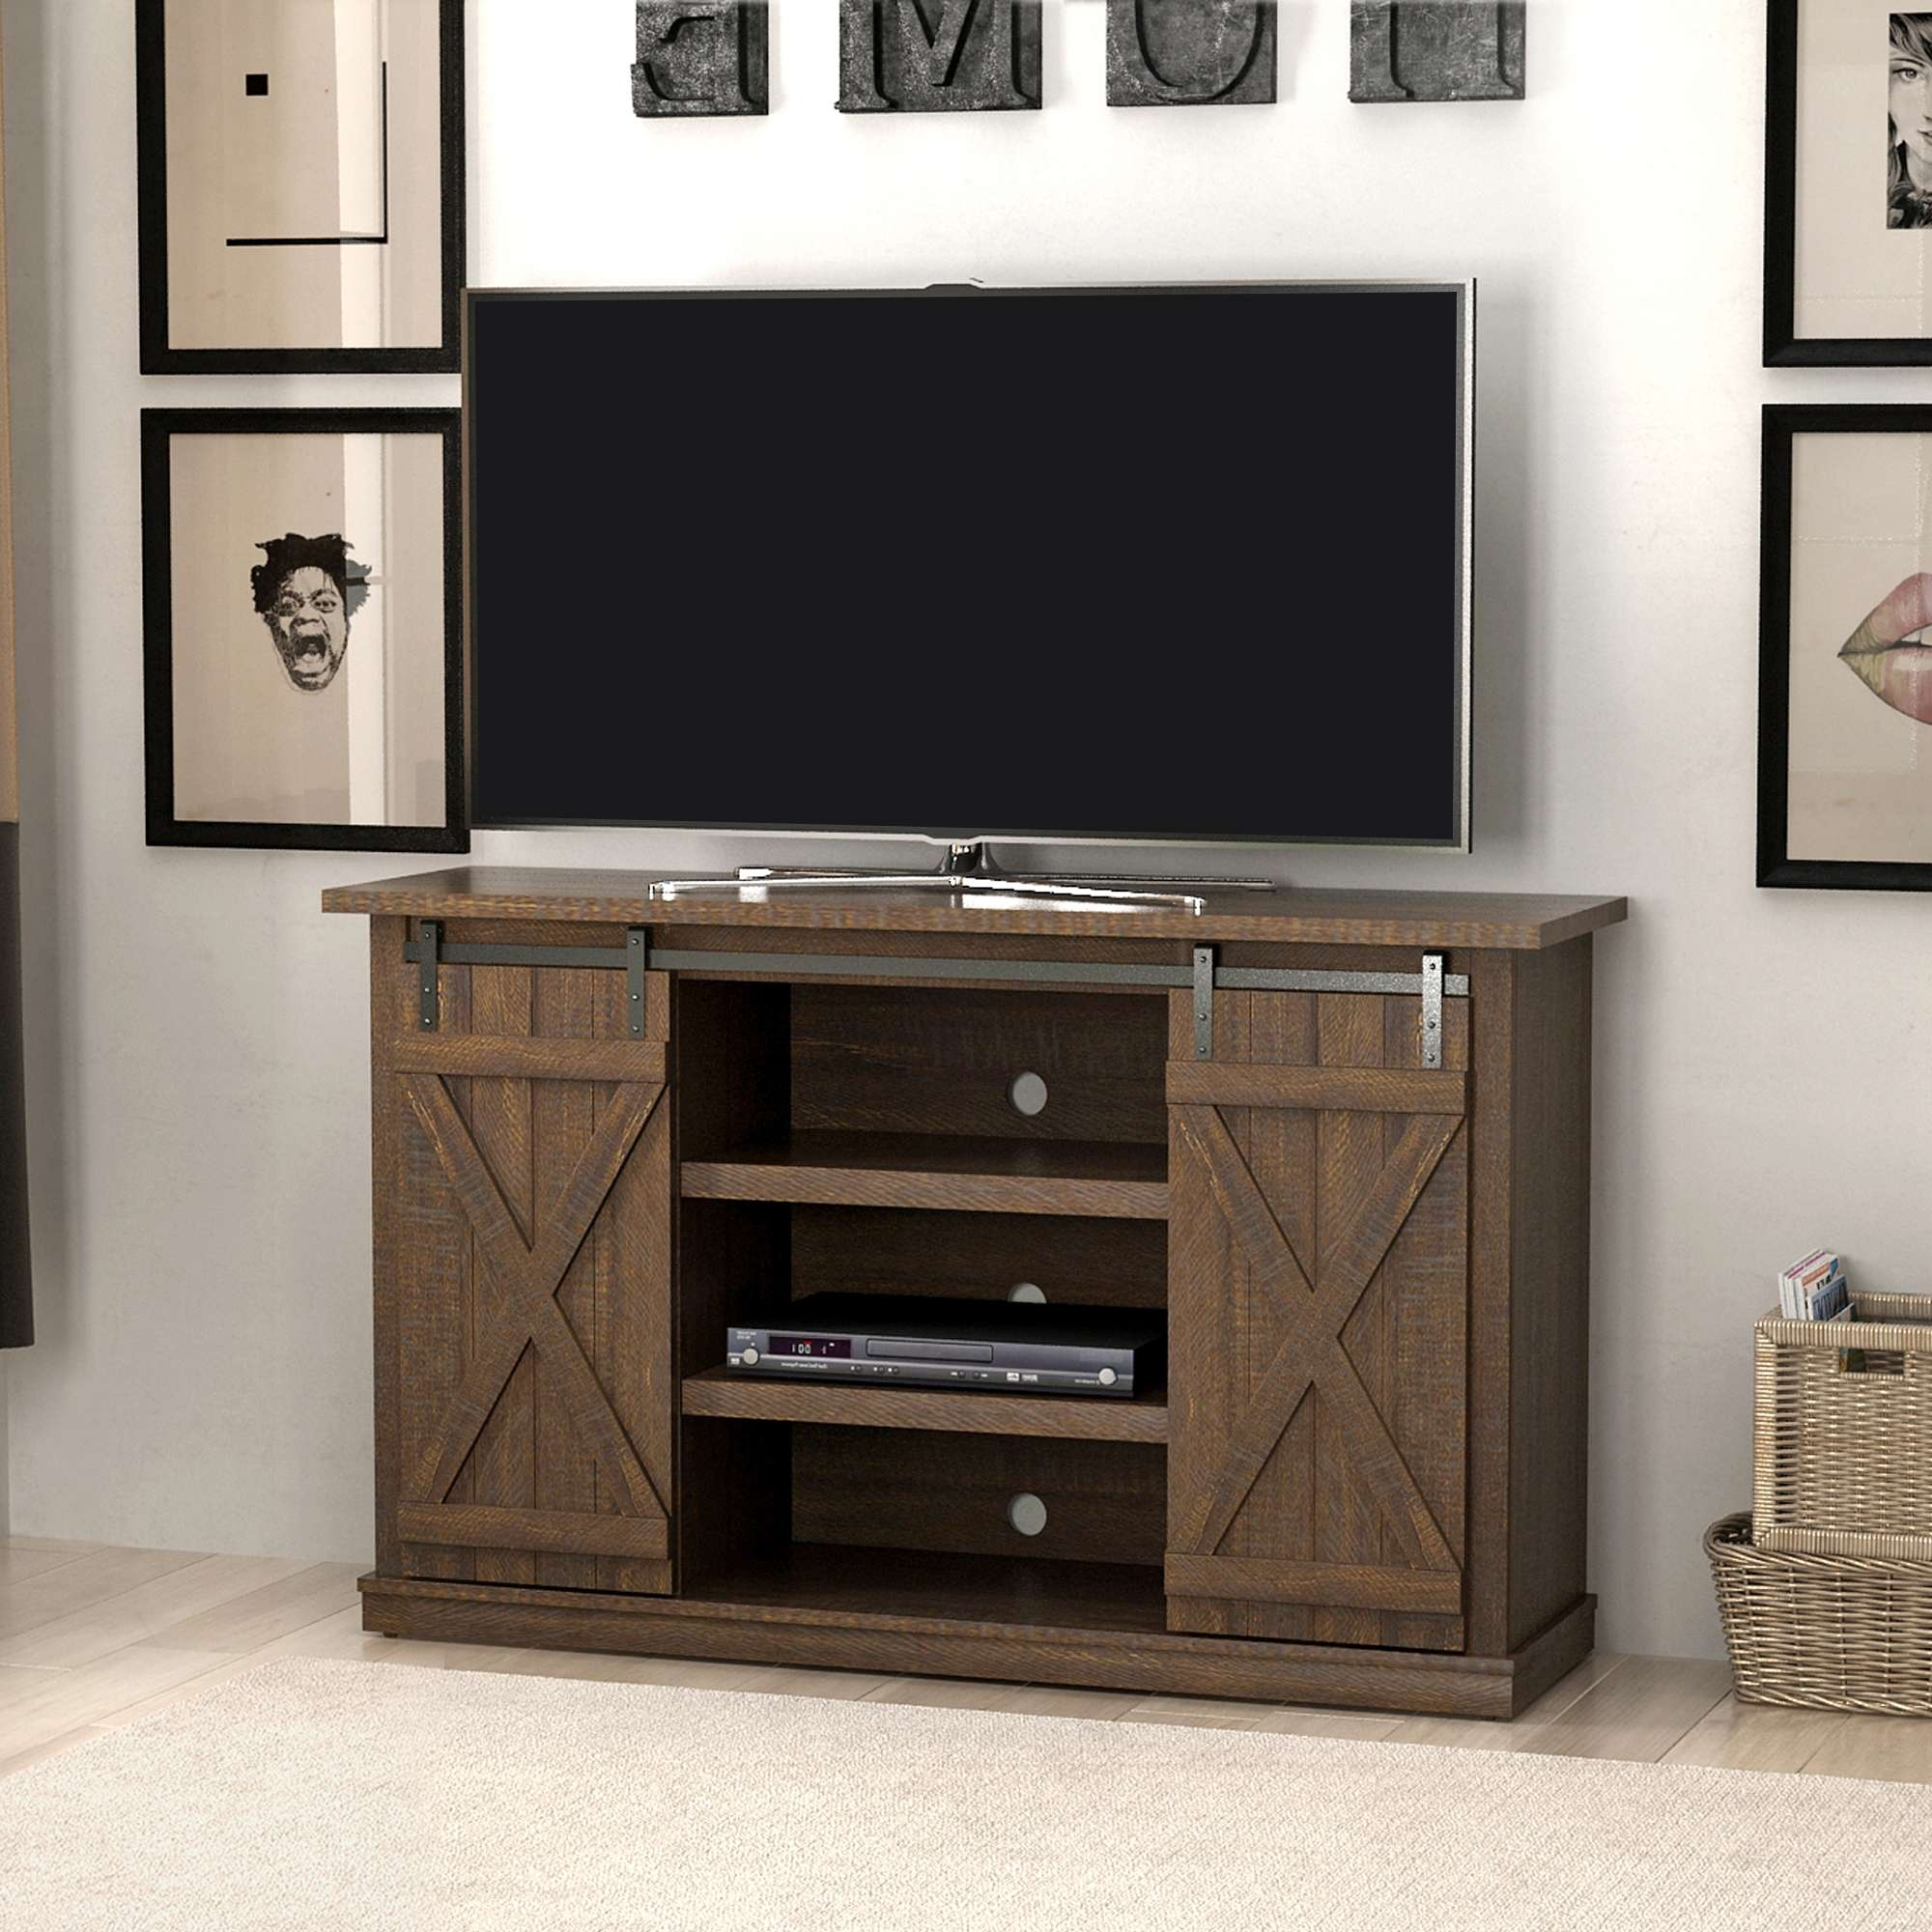 Tv : Modern Tv Stands For 60 Inch Tvs Arresting Modern Tv Stands Pertaining To Modern 60 Inch Tv Stands (View 19 of 20)